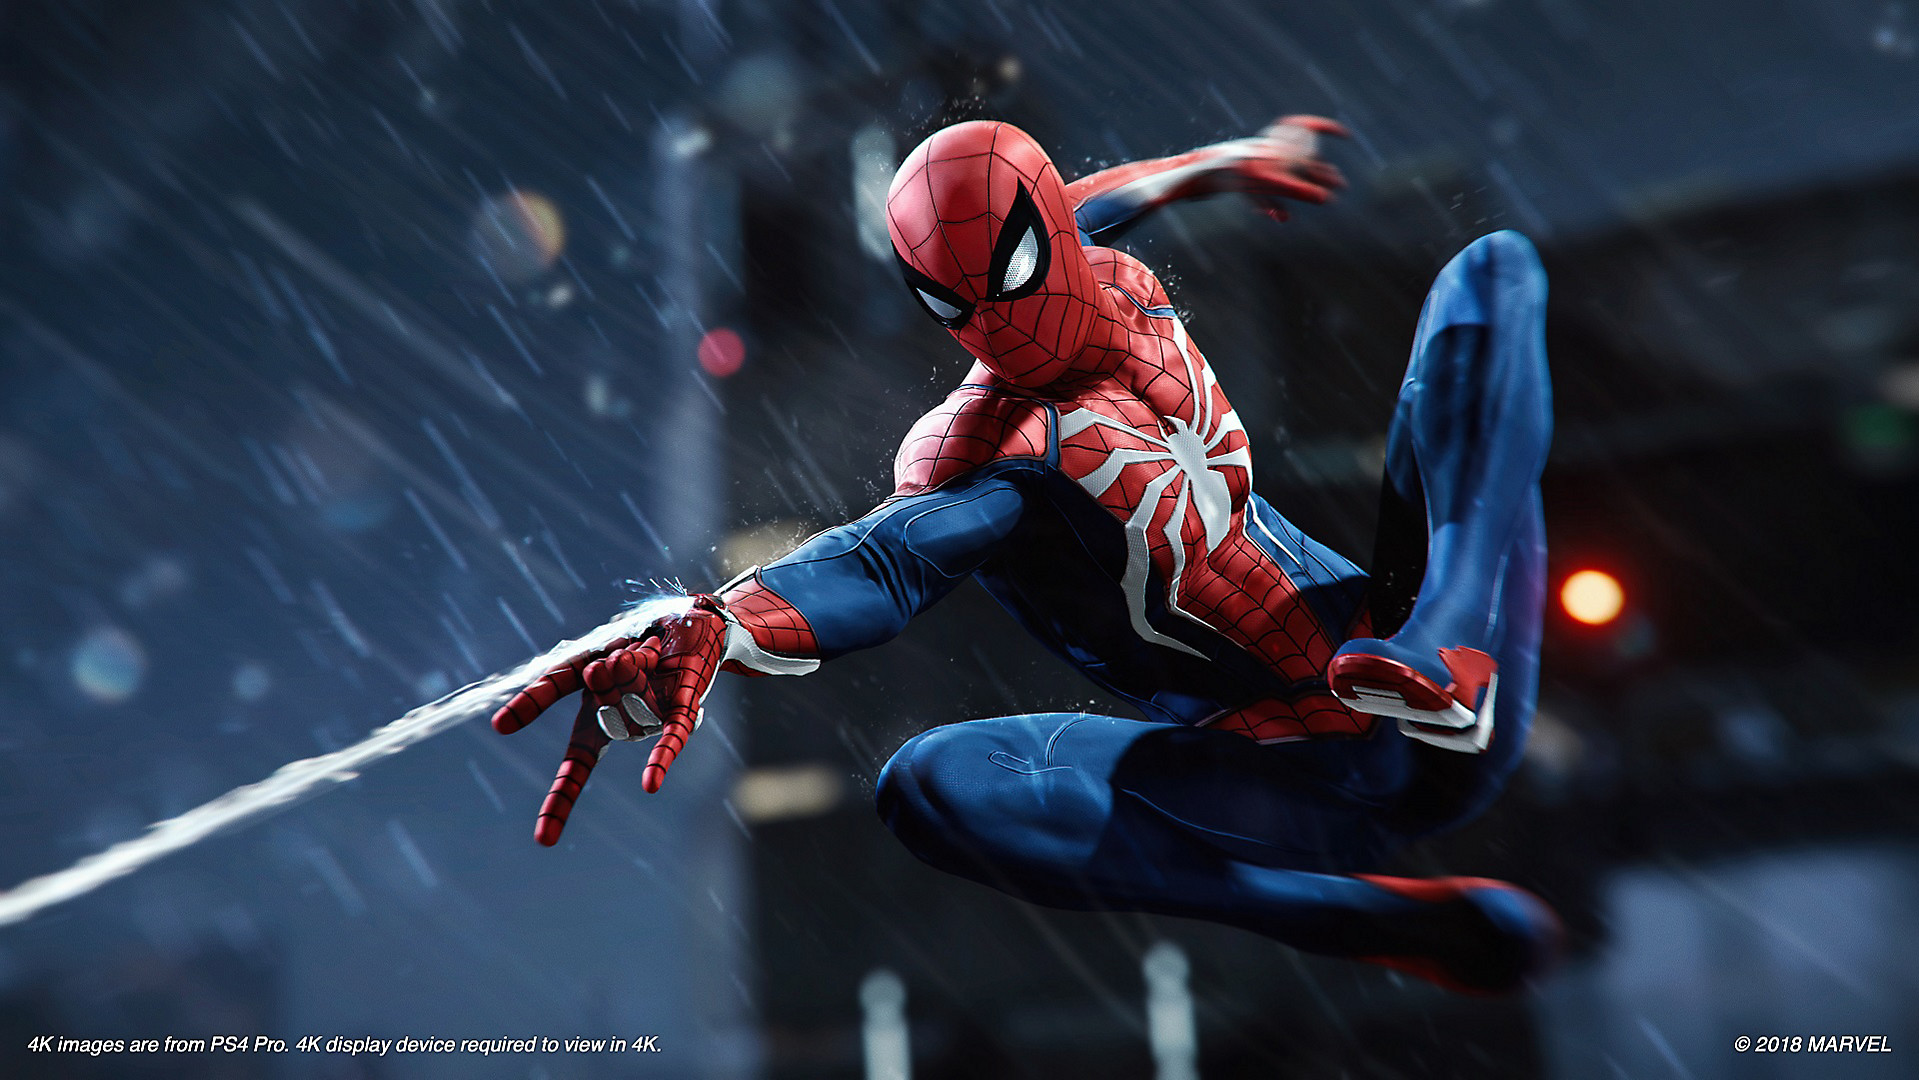 Marvel's Spiderman per PS4, una recensione ragionata.